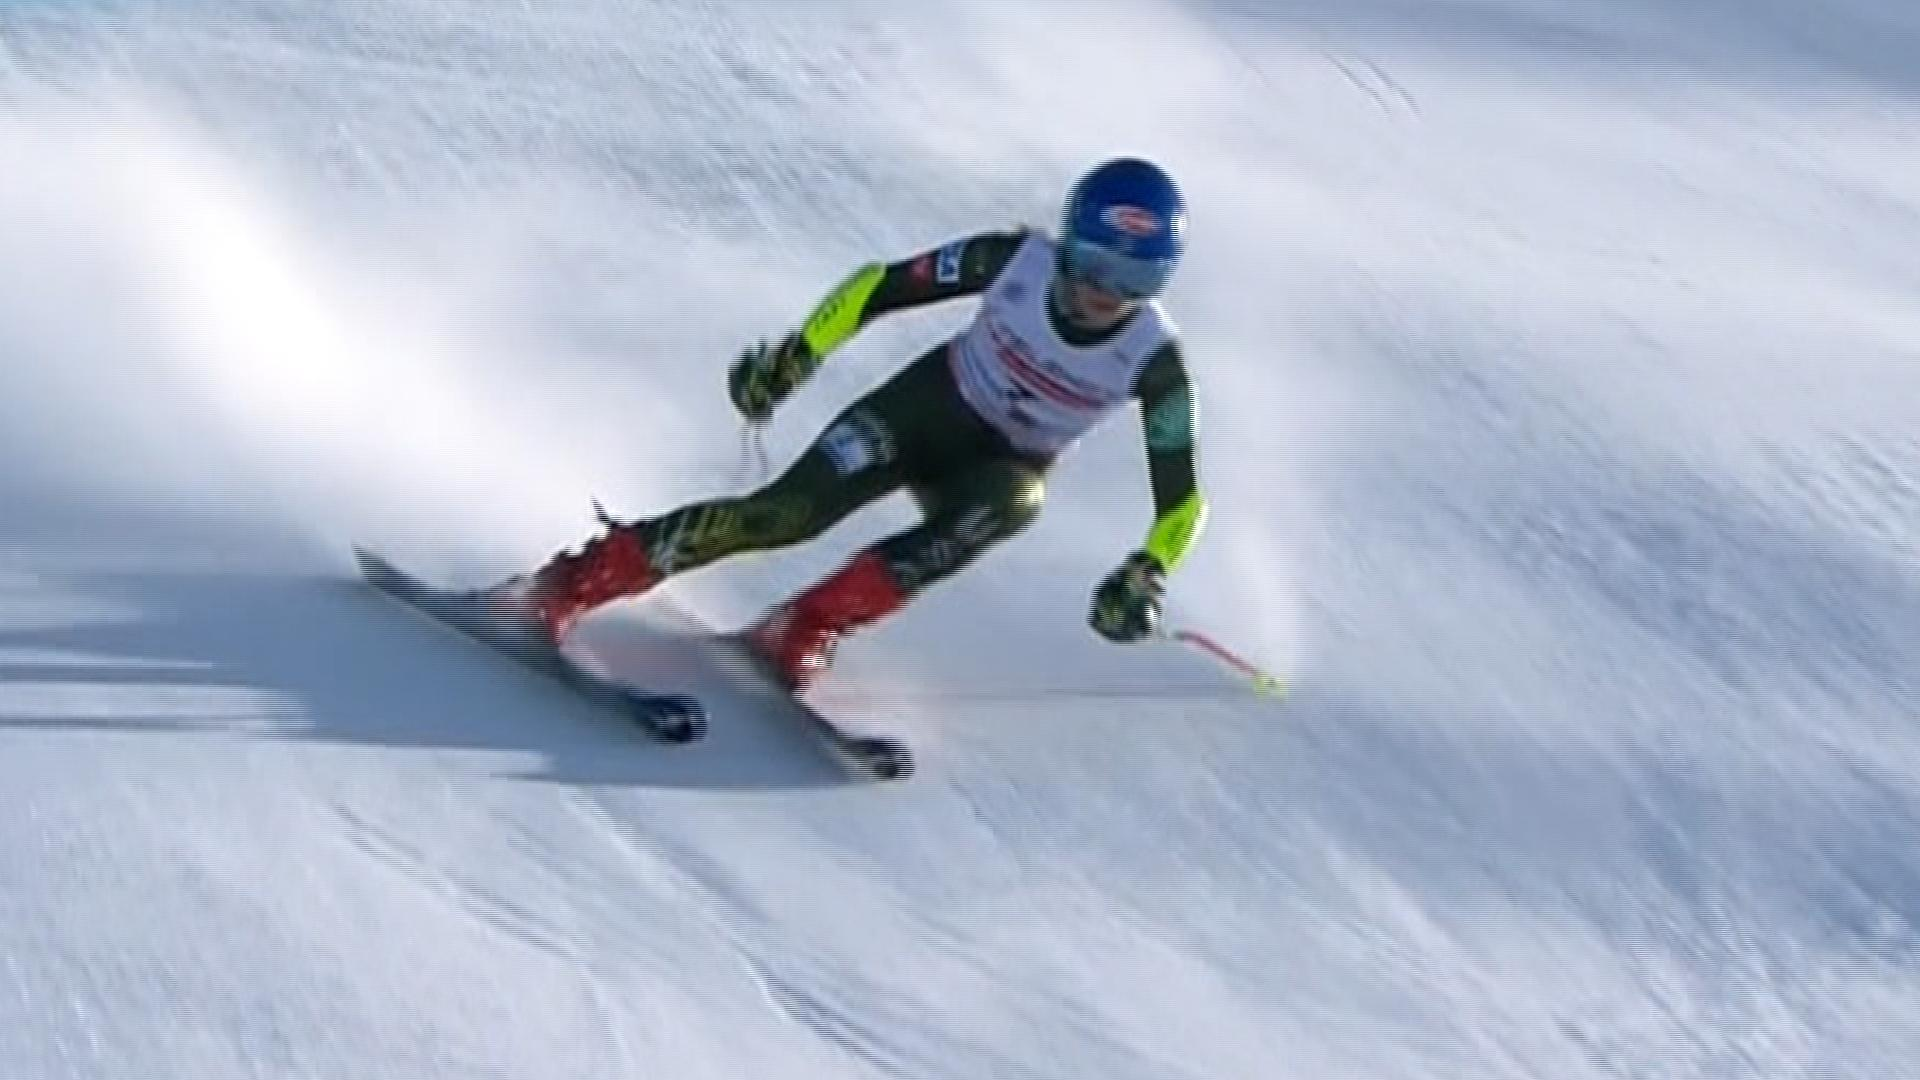 Mikaela Shiffrin comes in third place in women's World Cup giant